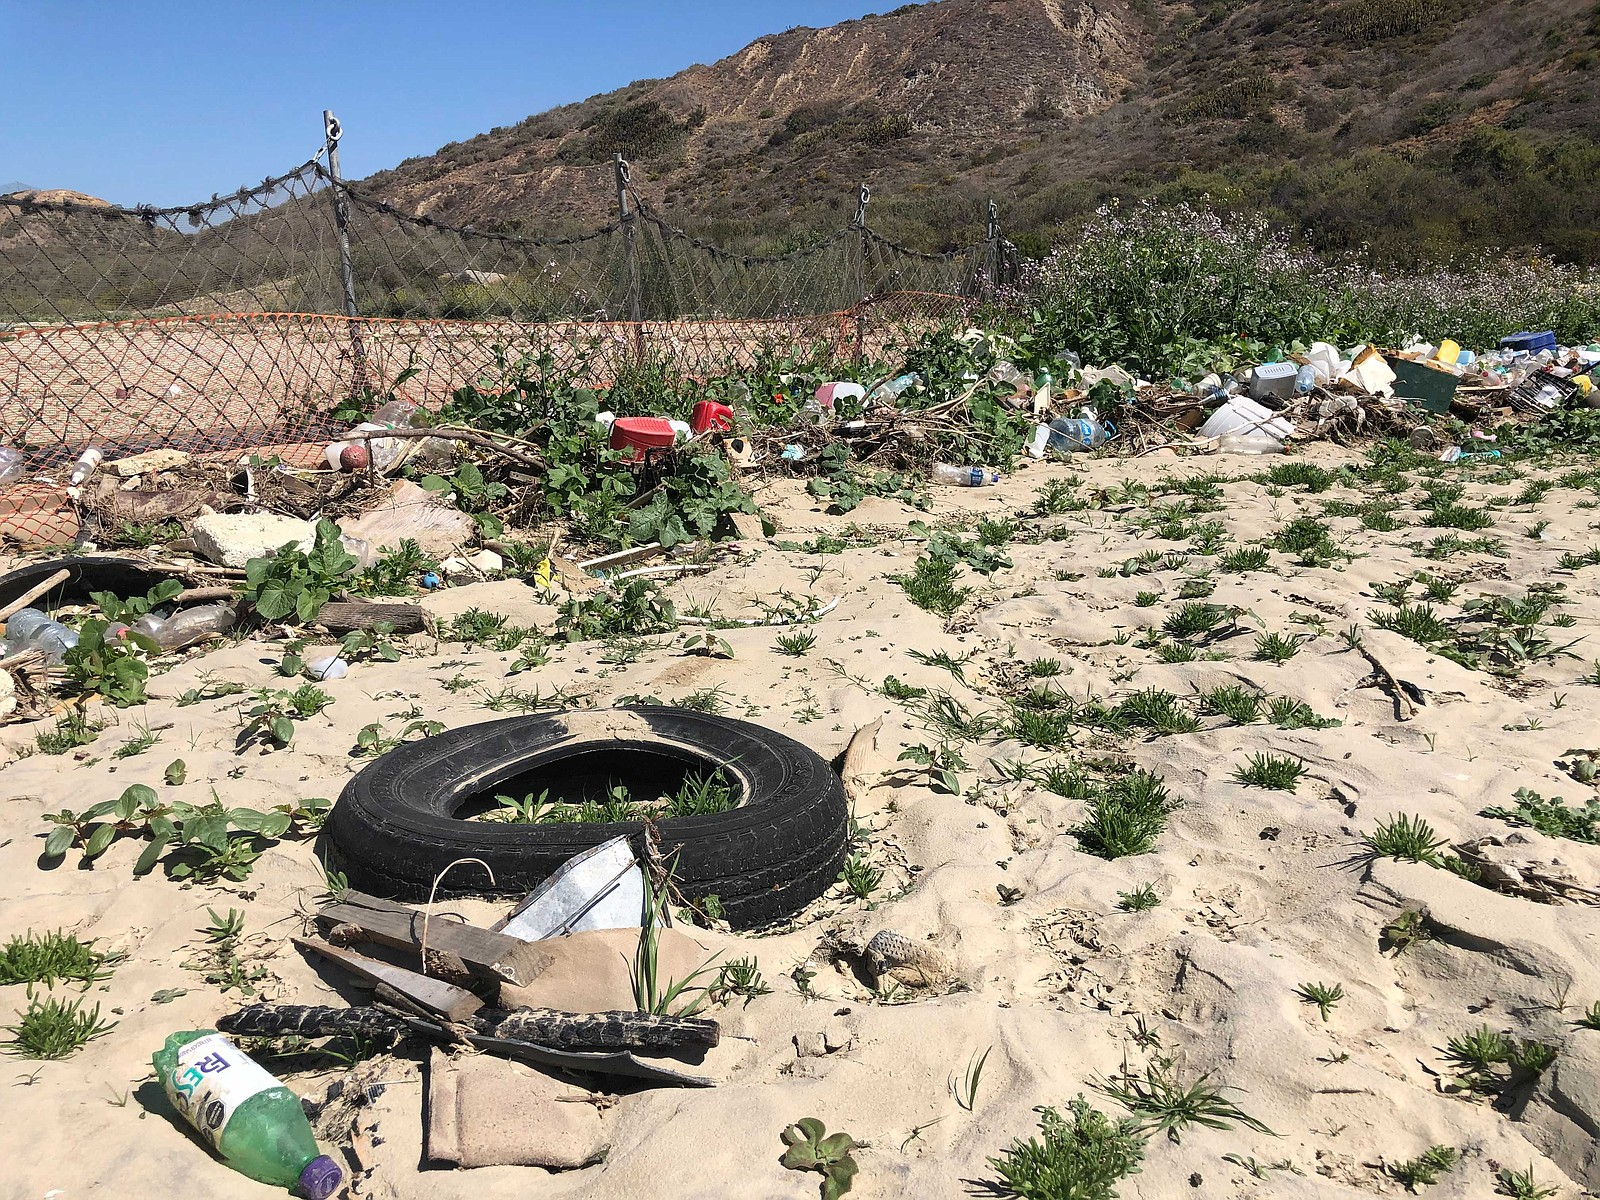 Trash caught by a collection boom in Goat Canyon near the U.S. Mexico border ...